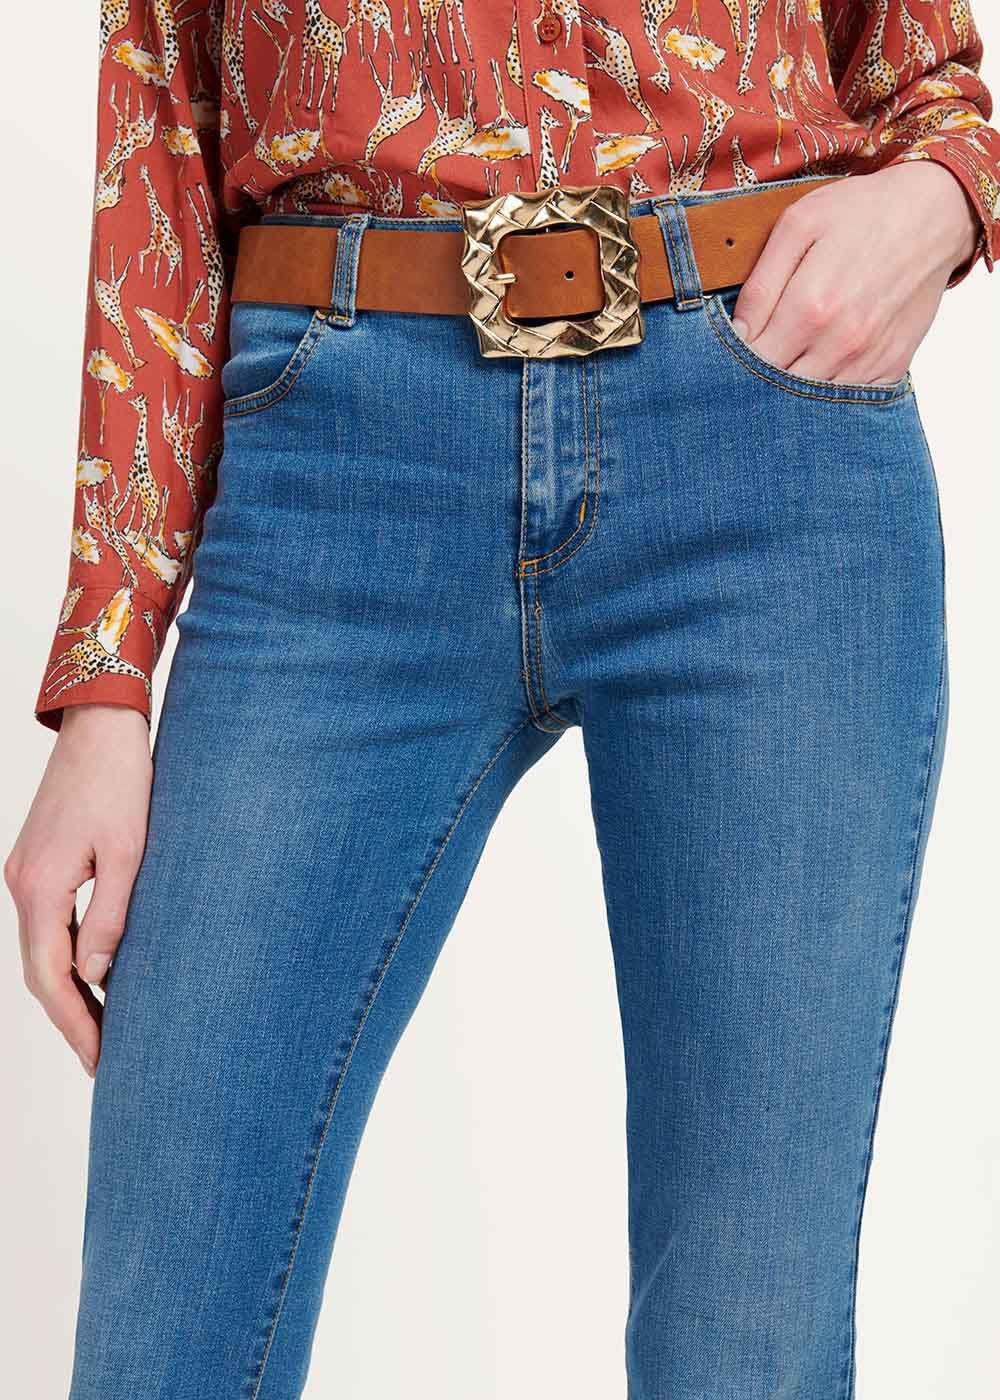 Cromby belt with square buckle - Tobacco - Woman